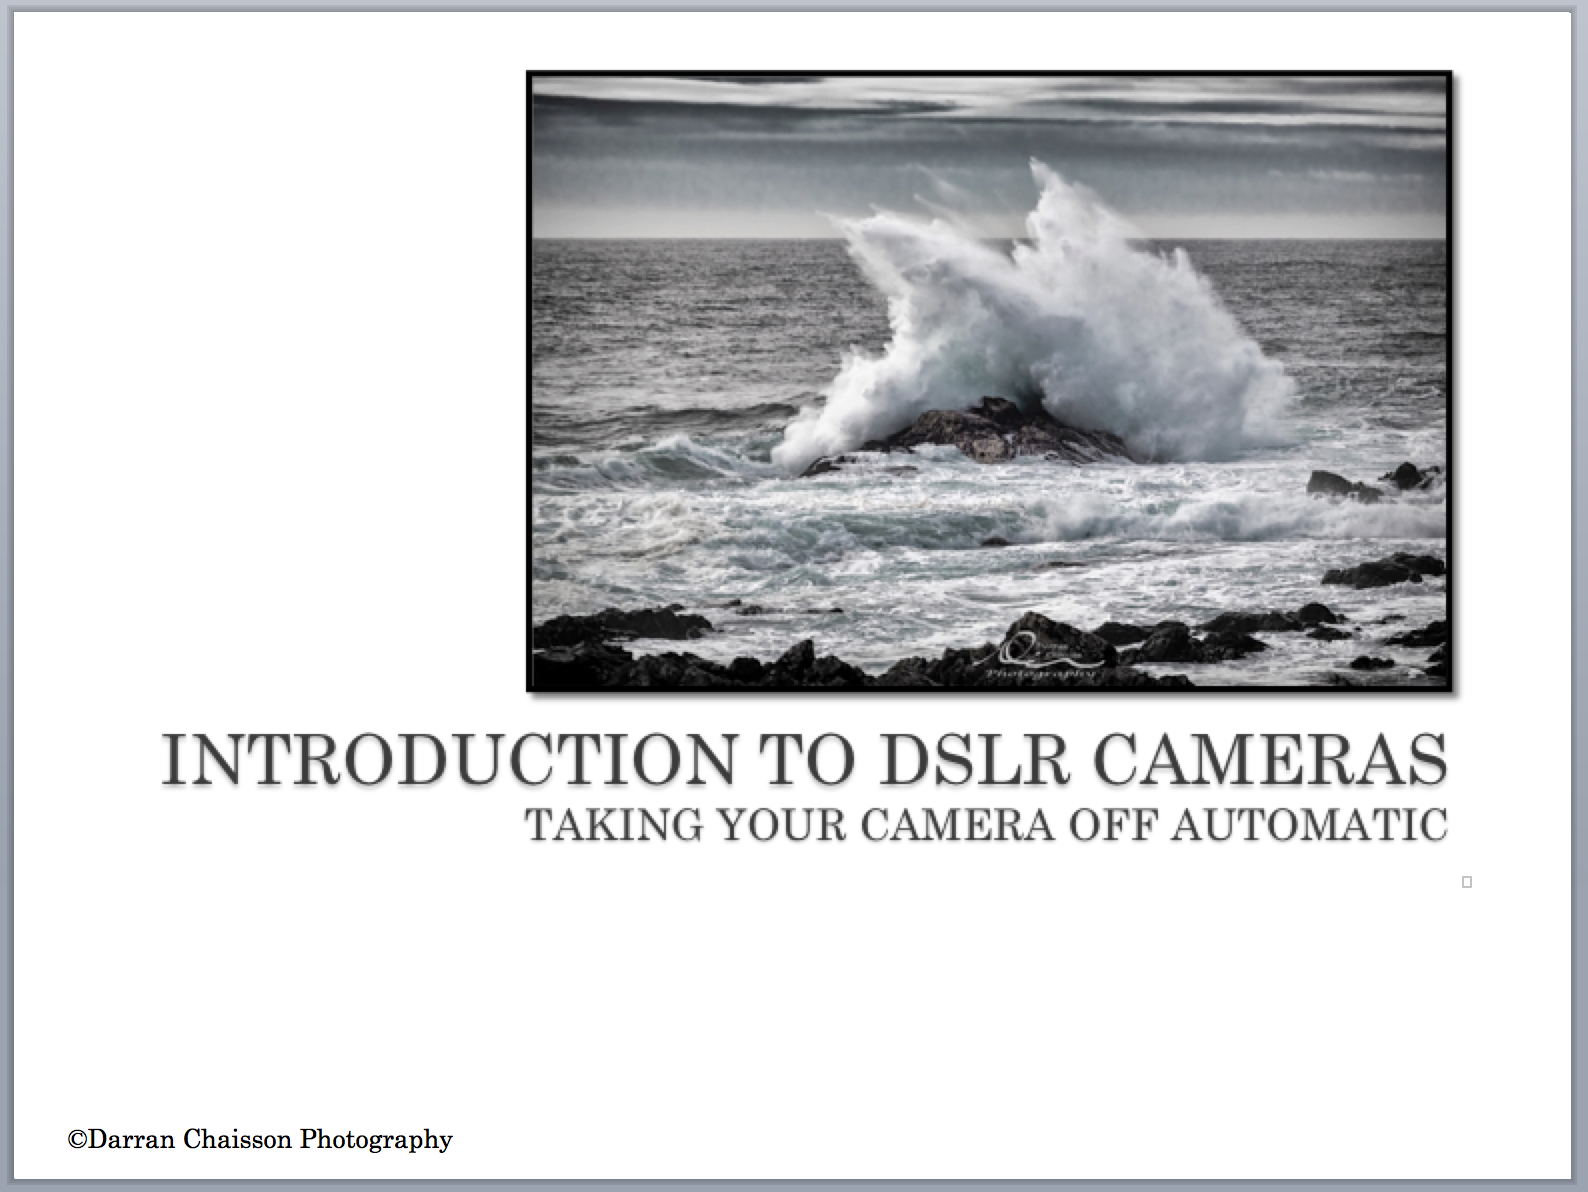 Darran Chaisson Photography Introduction to DSLR